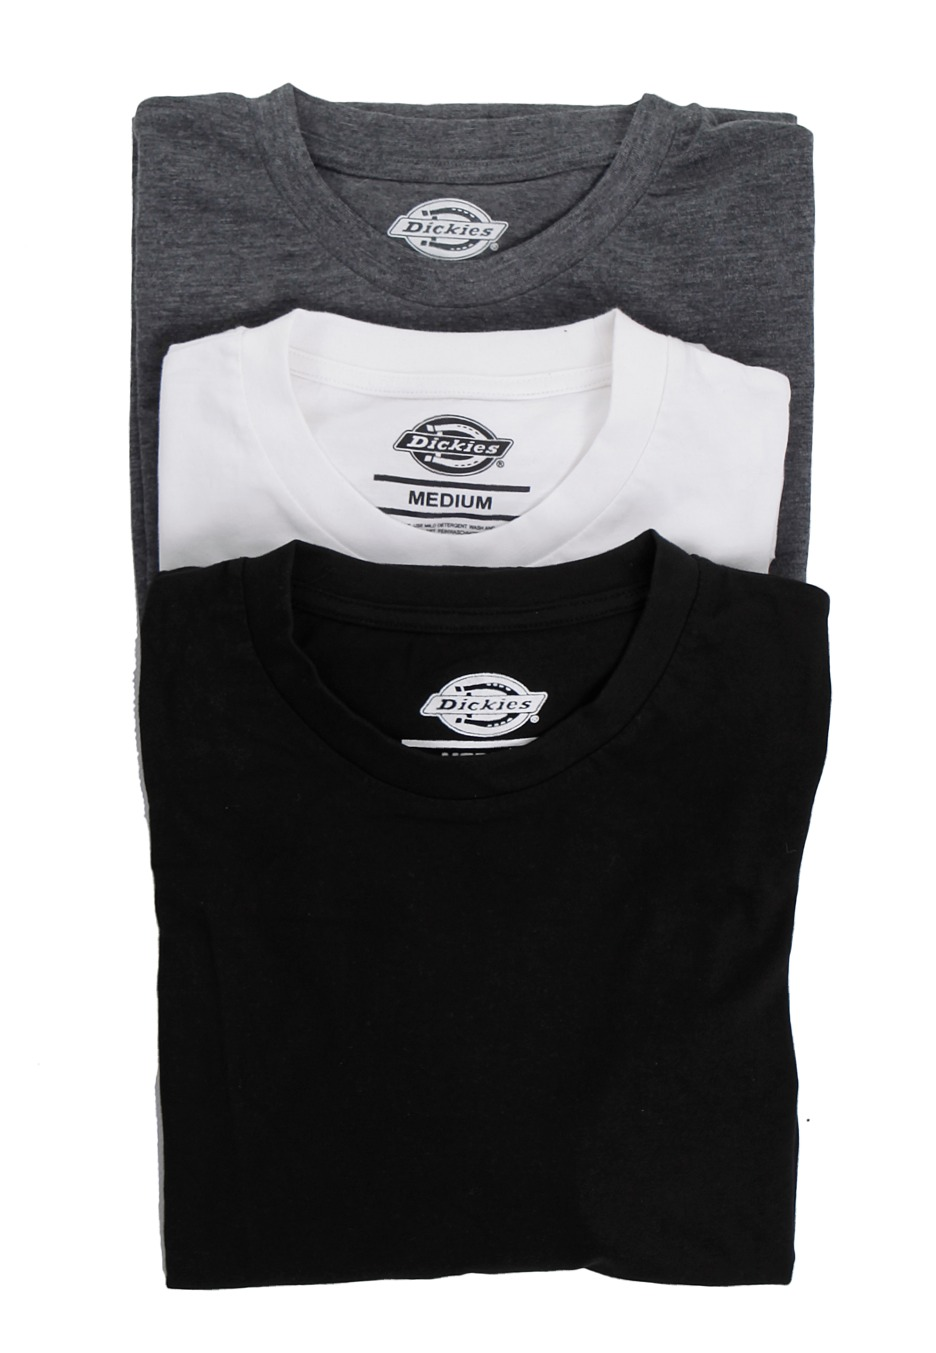 Dickies - Dickies Multi Color Pack Of 3 White/Grey/Black - T-Shirt ...